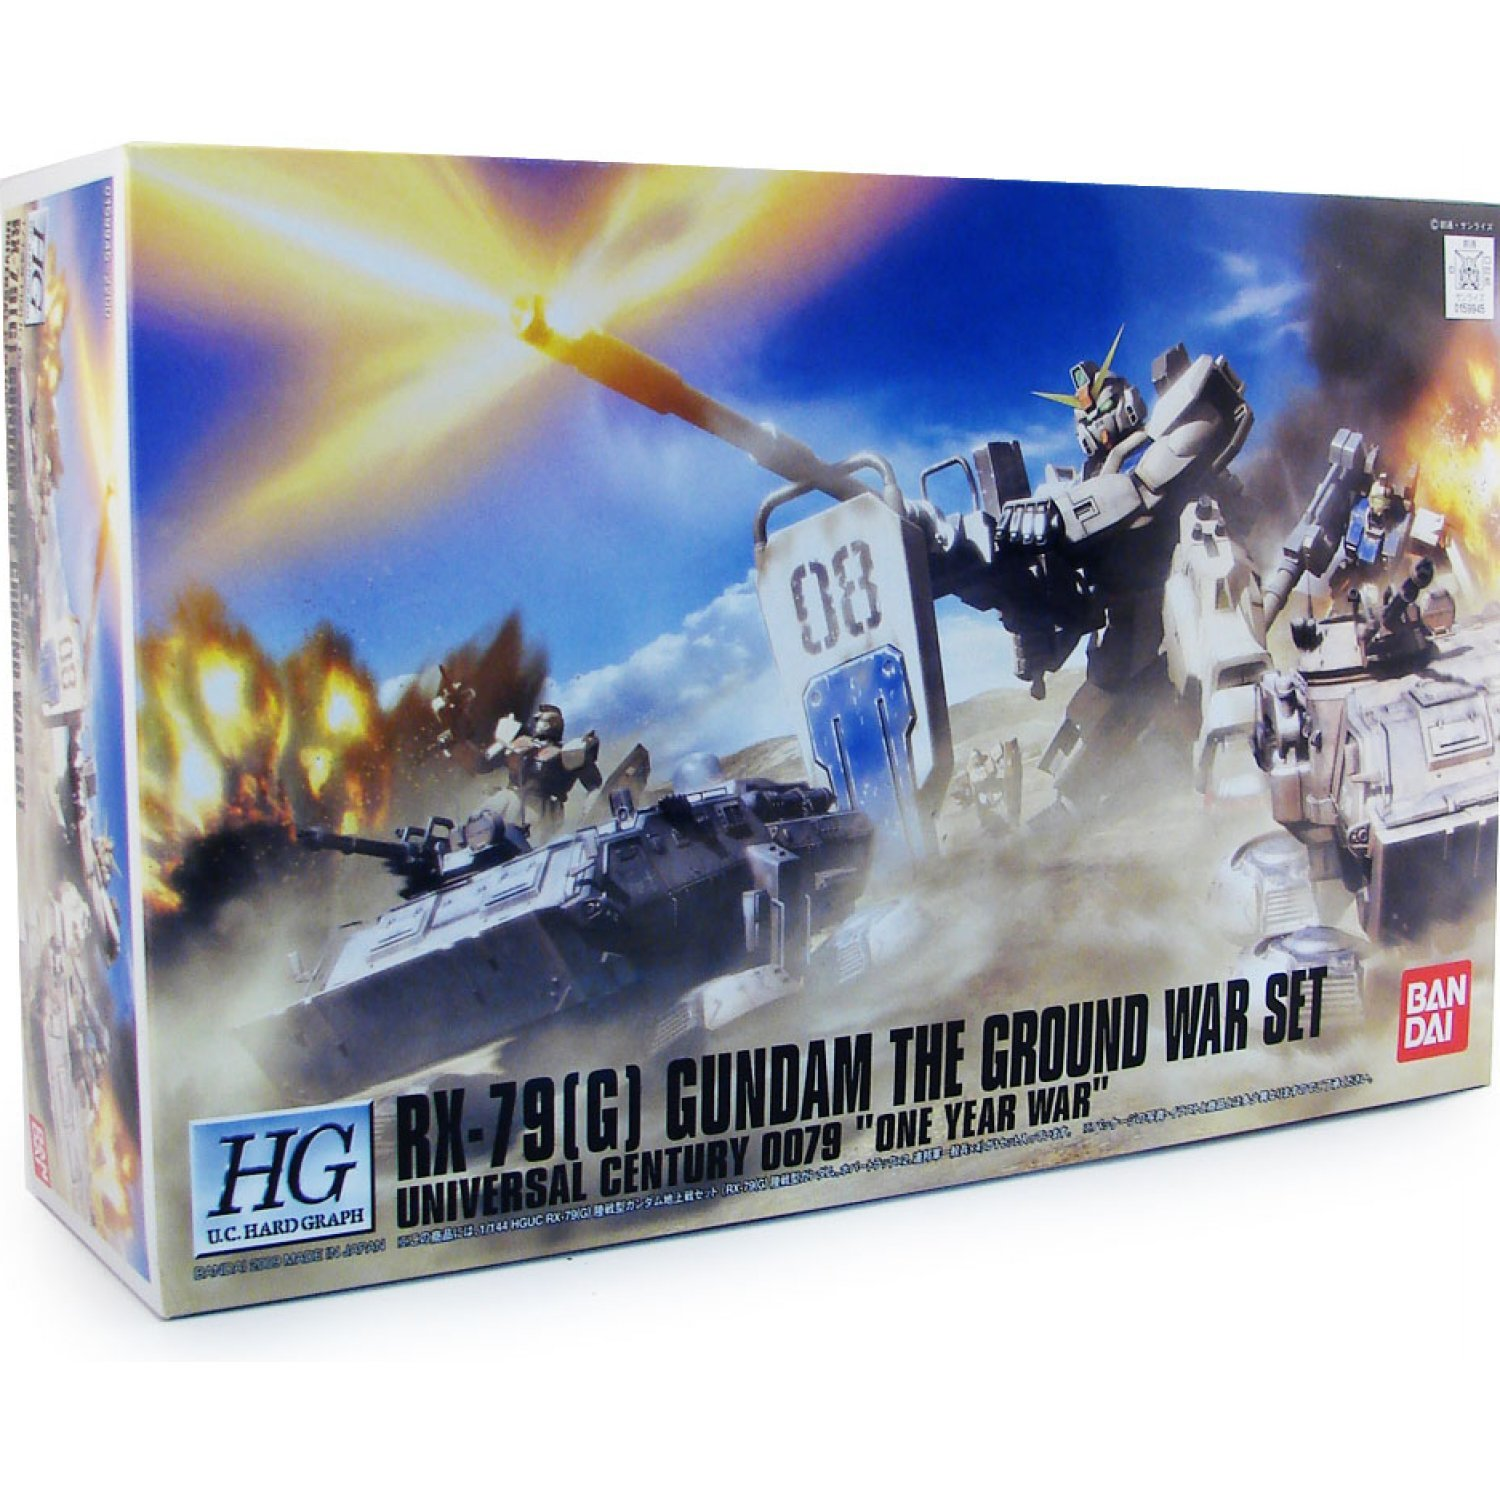 Gundam 1/144 Scale Pre-Painted Model Kit: The Ground War